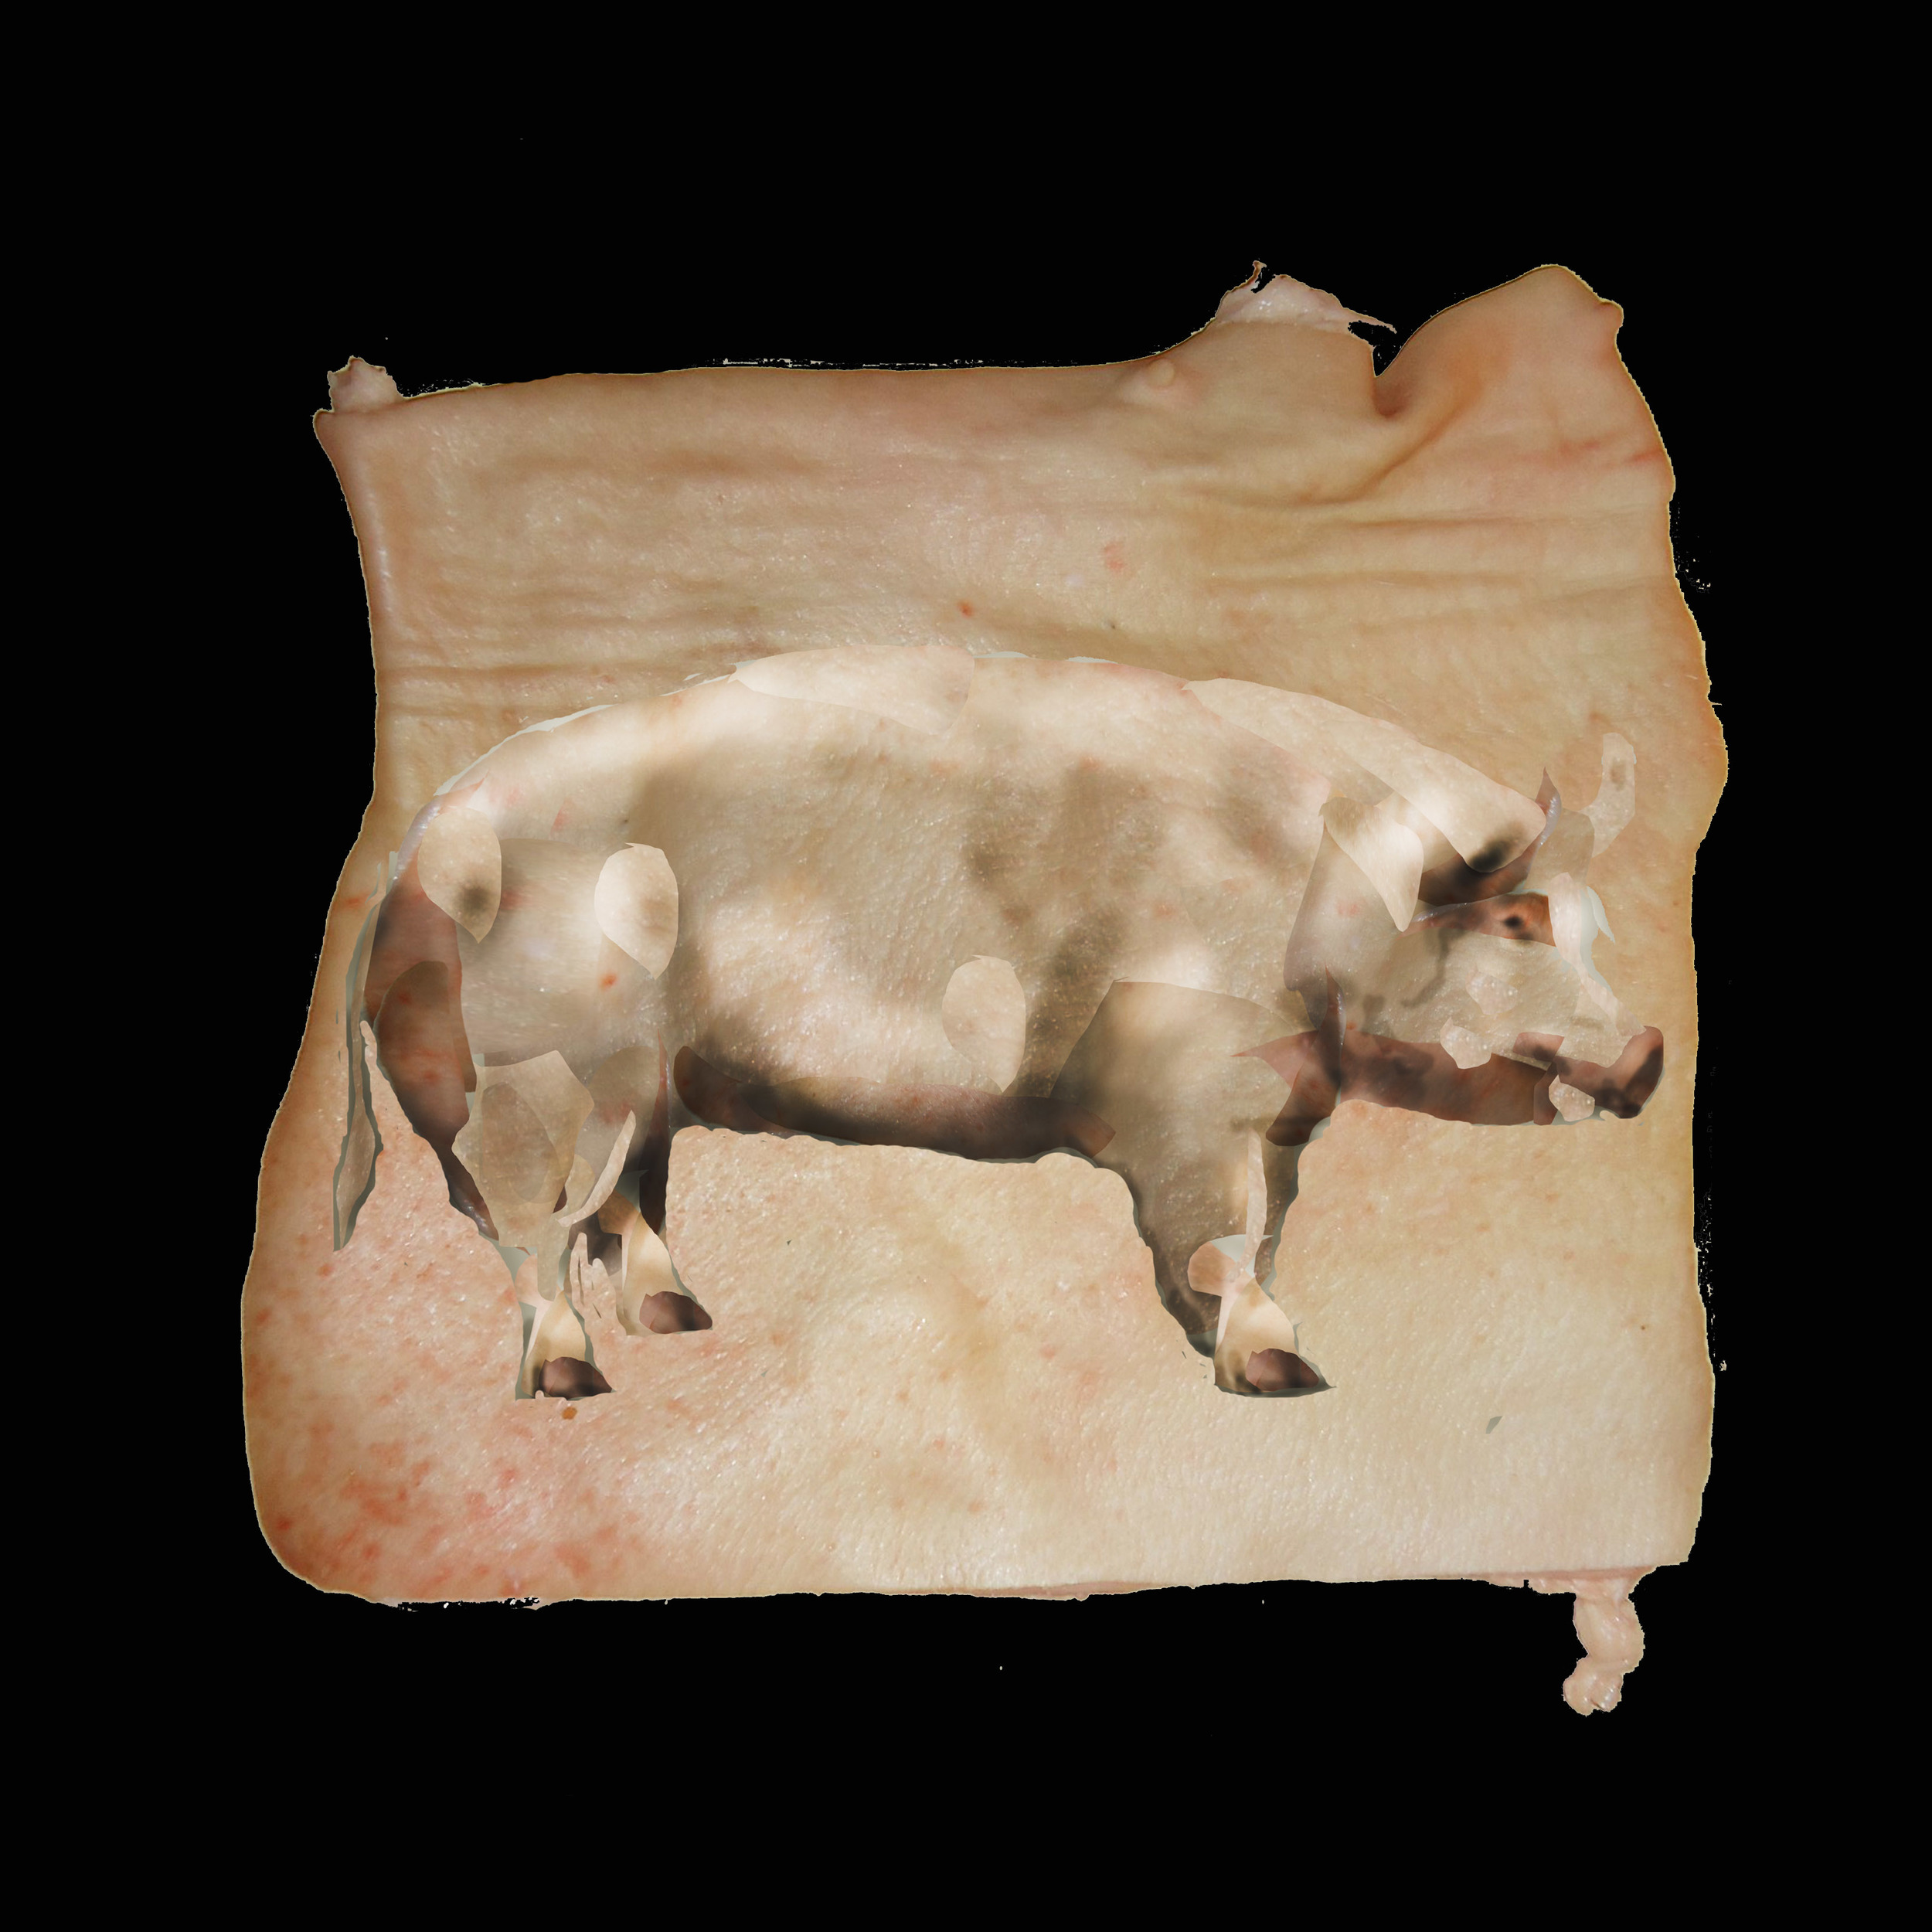 Pig made from skin through burning, dodging and cutting 2015